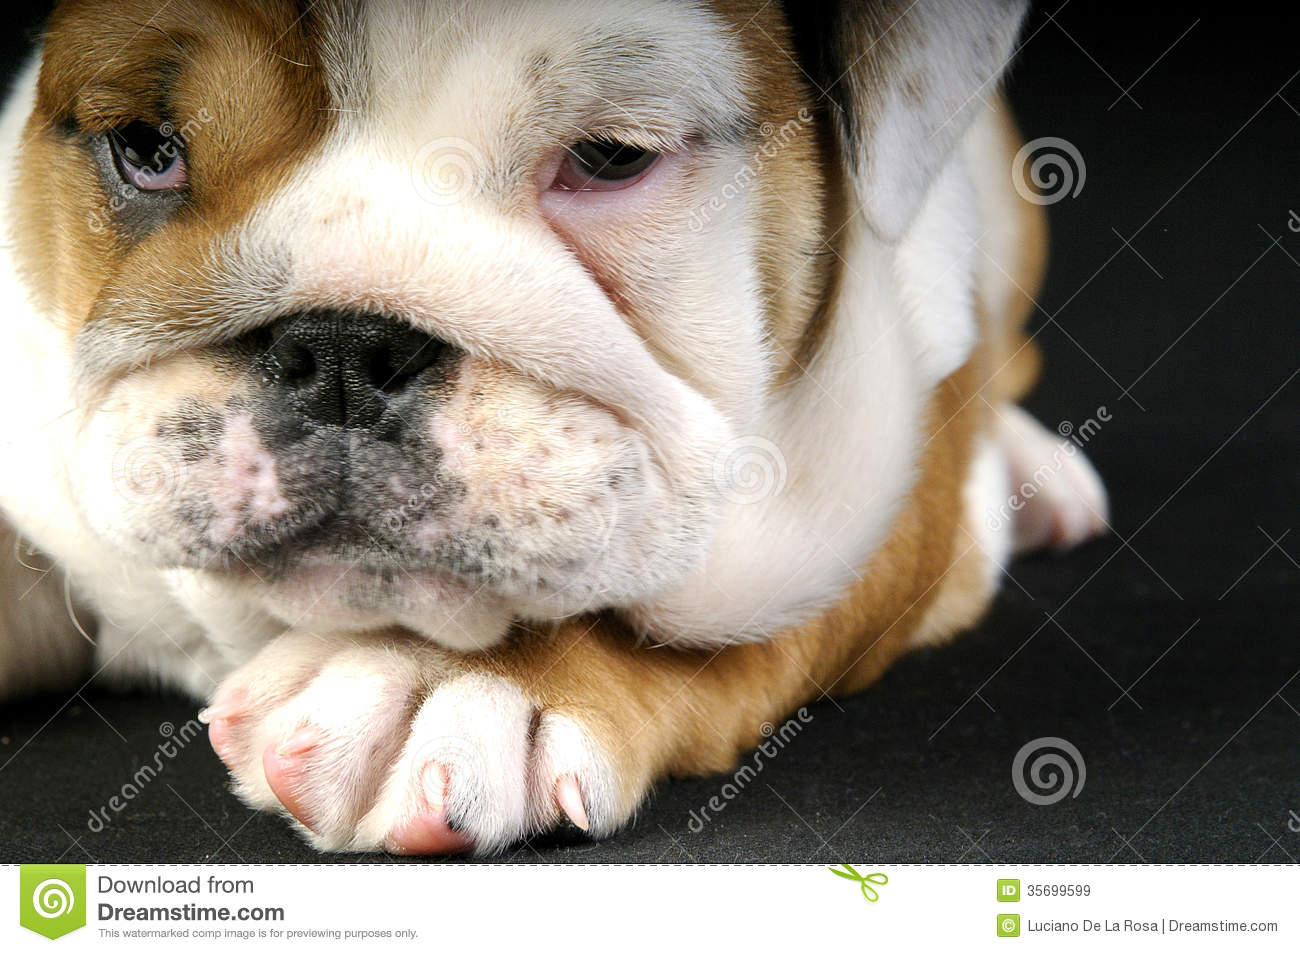 English Bulldog laying on a black carpet. She is looking to the